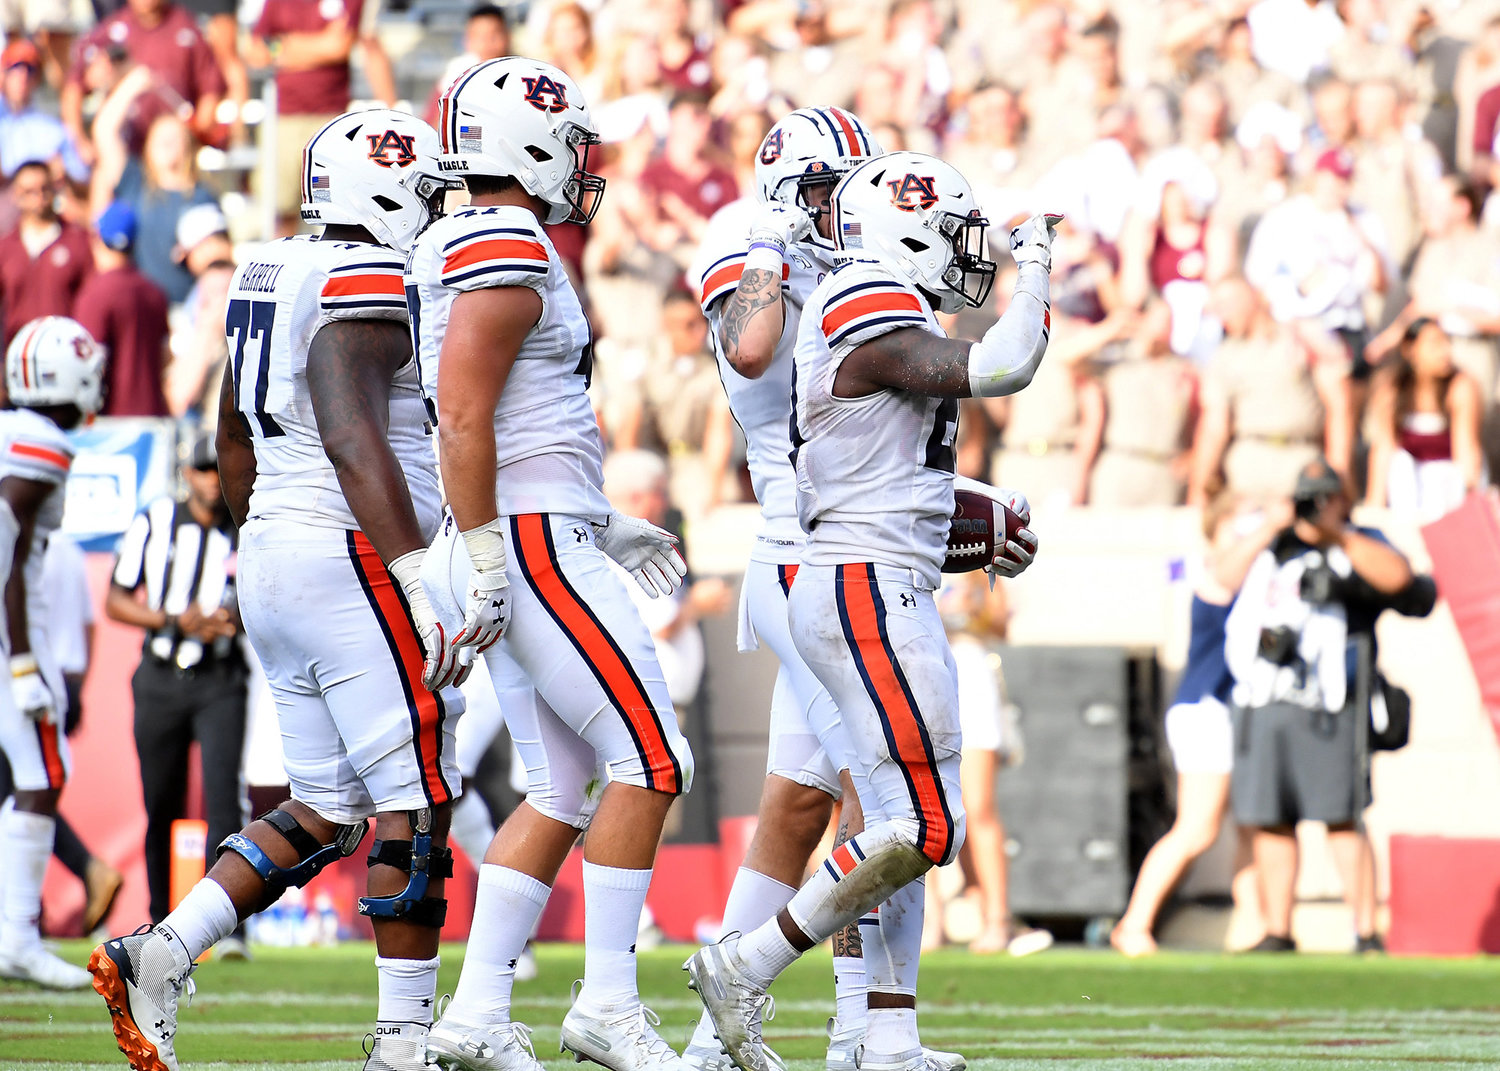 Auburn Tigers running back JaTarvious Whitlow (28) celebrates his touchdown during fourth quarter of an NCAA football game against the Texas A&M Aggies Saturday, Sept. 21, 2019, at Kyle Field in College Station Texas. Auburn wins 28-20.